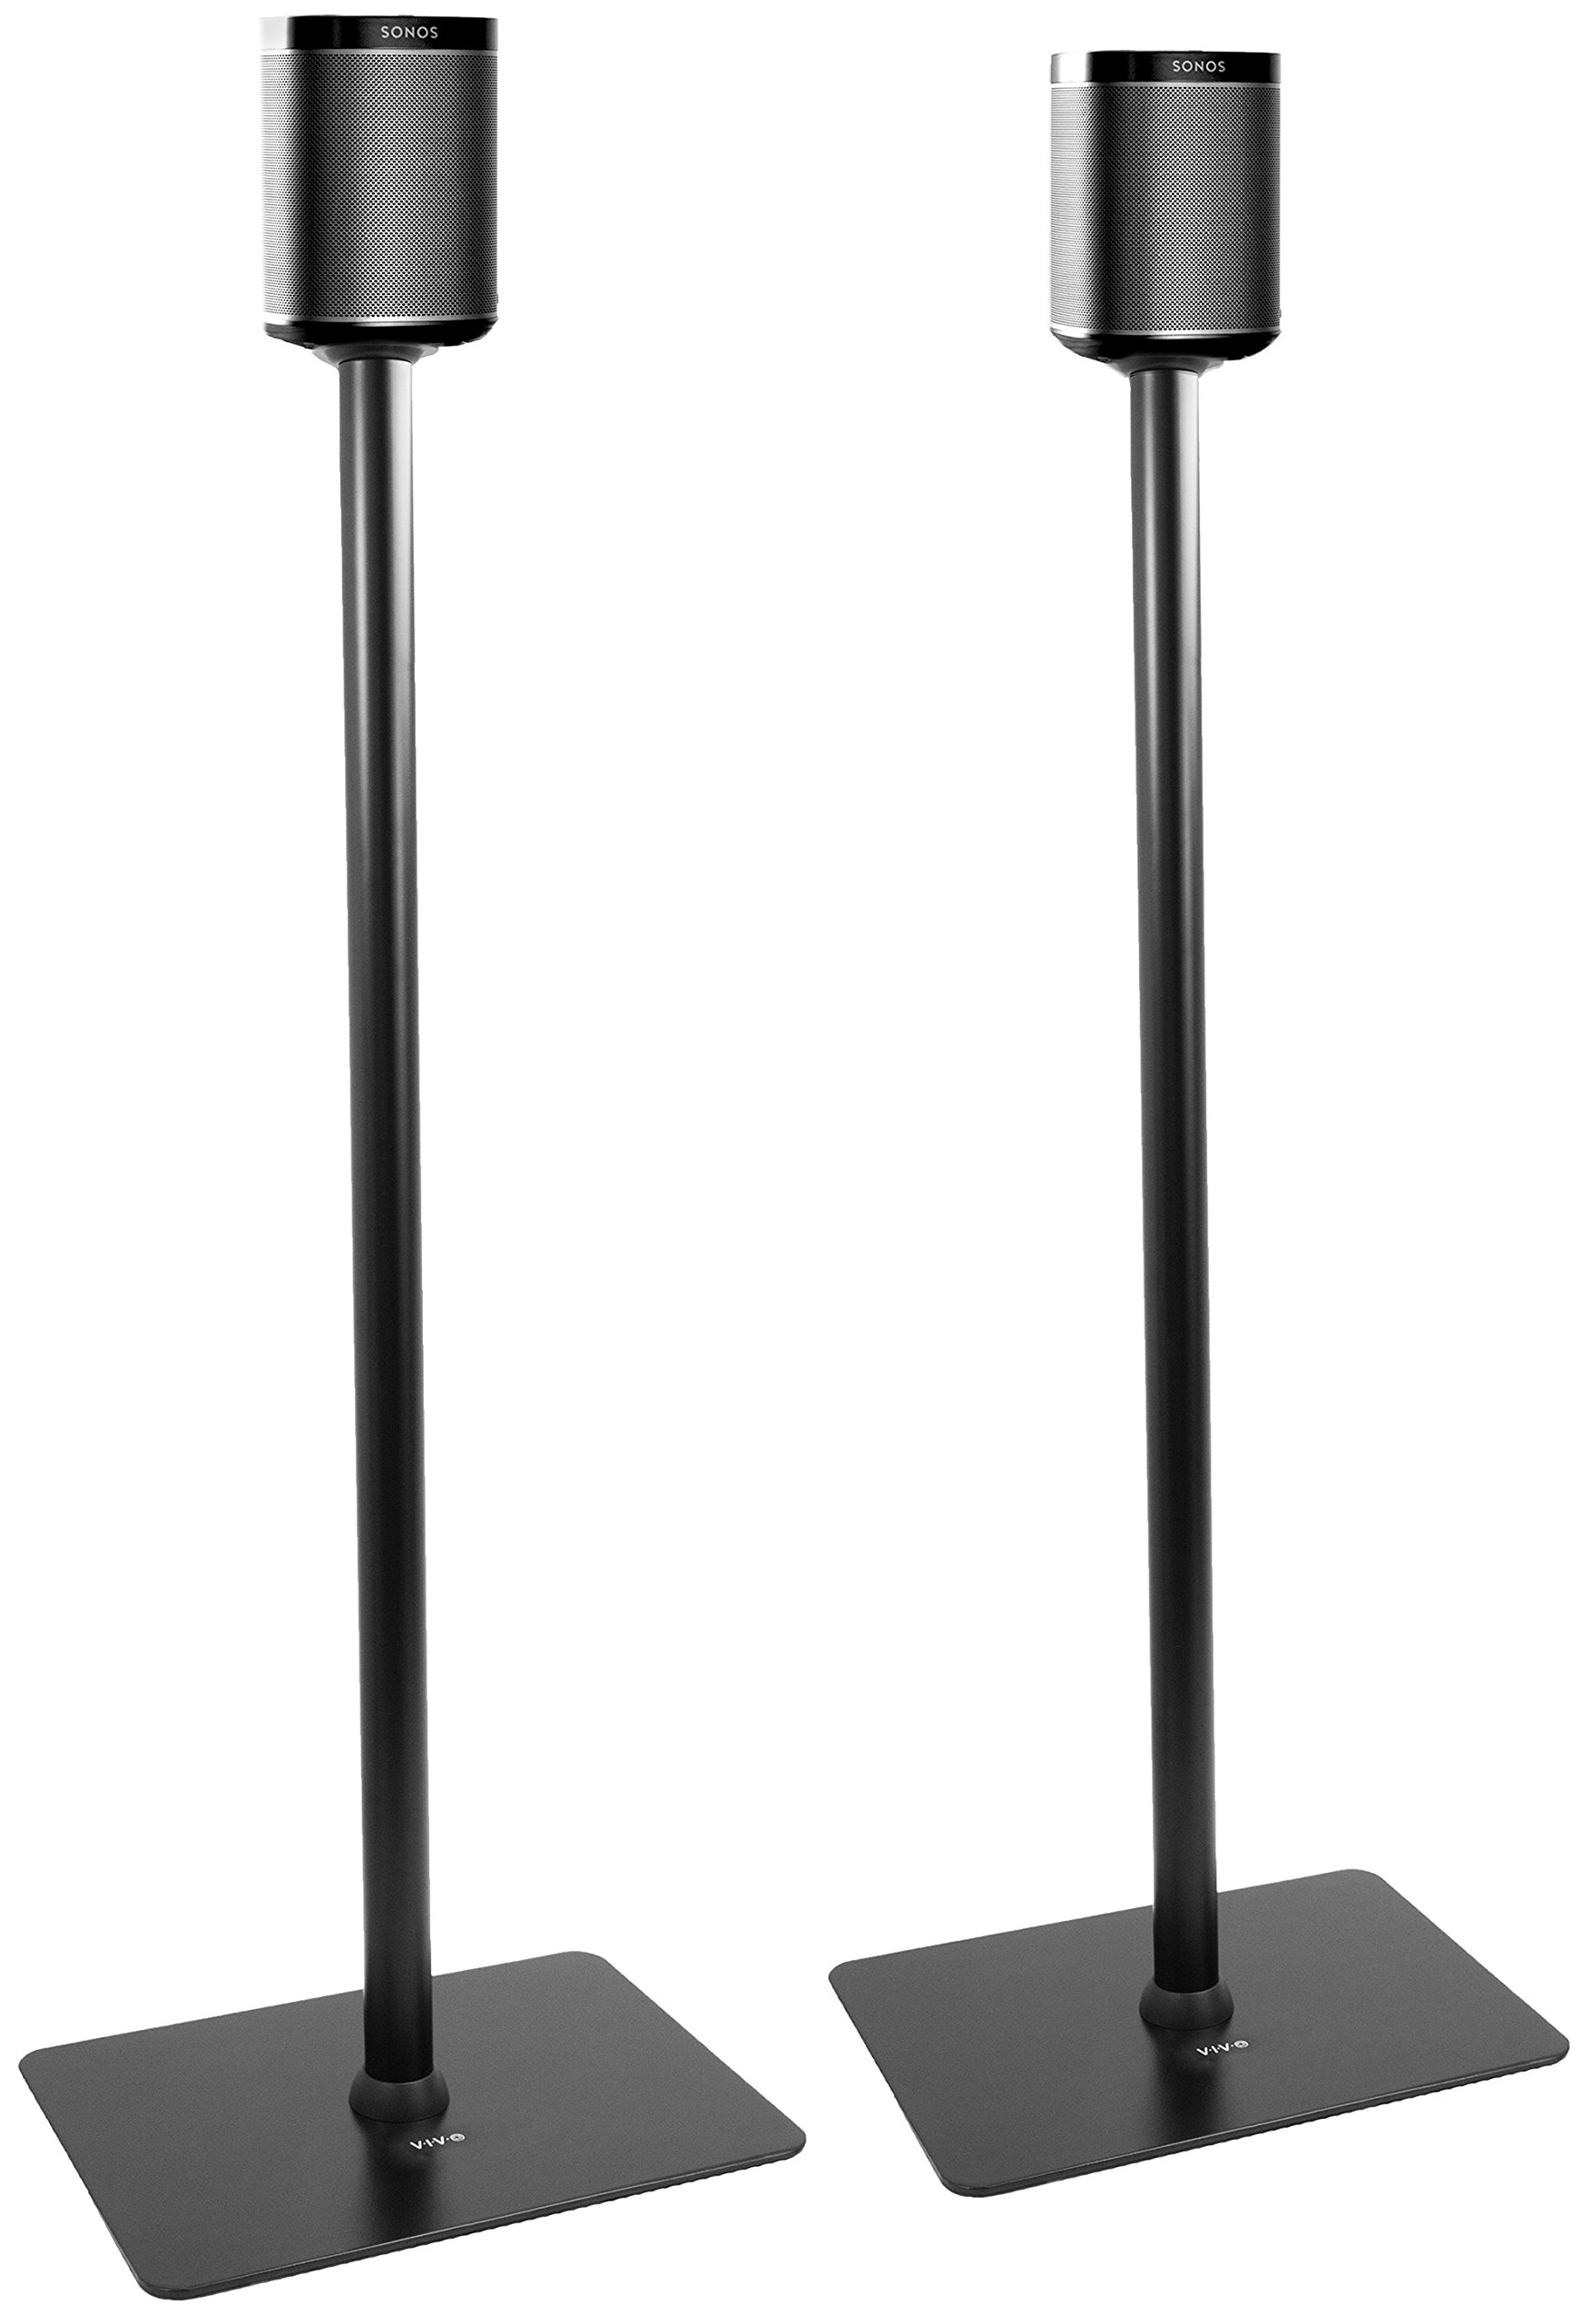 VIVO Black 39 inch Speaker Floor Stands (Pair) Designed for SONOS Play 1 and Play 3 Audio Speaker Mounts (STAND-SP03C) by VIVO